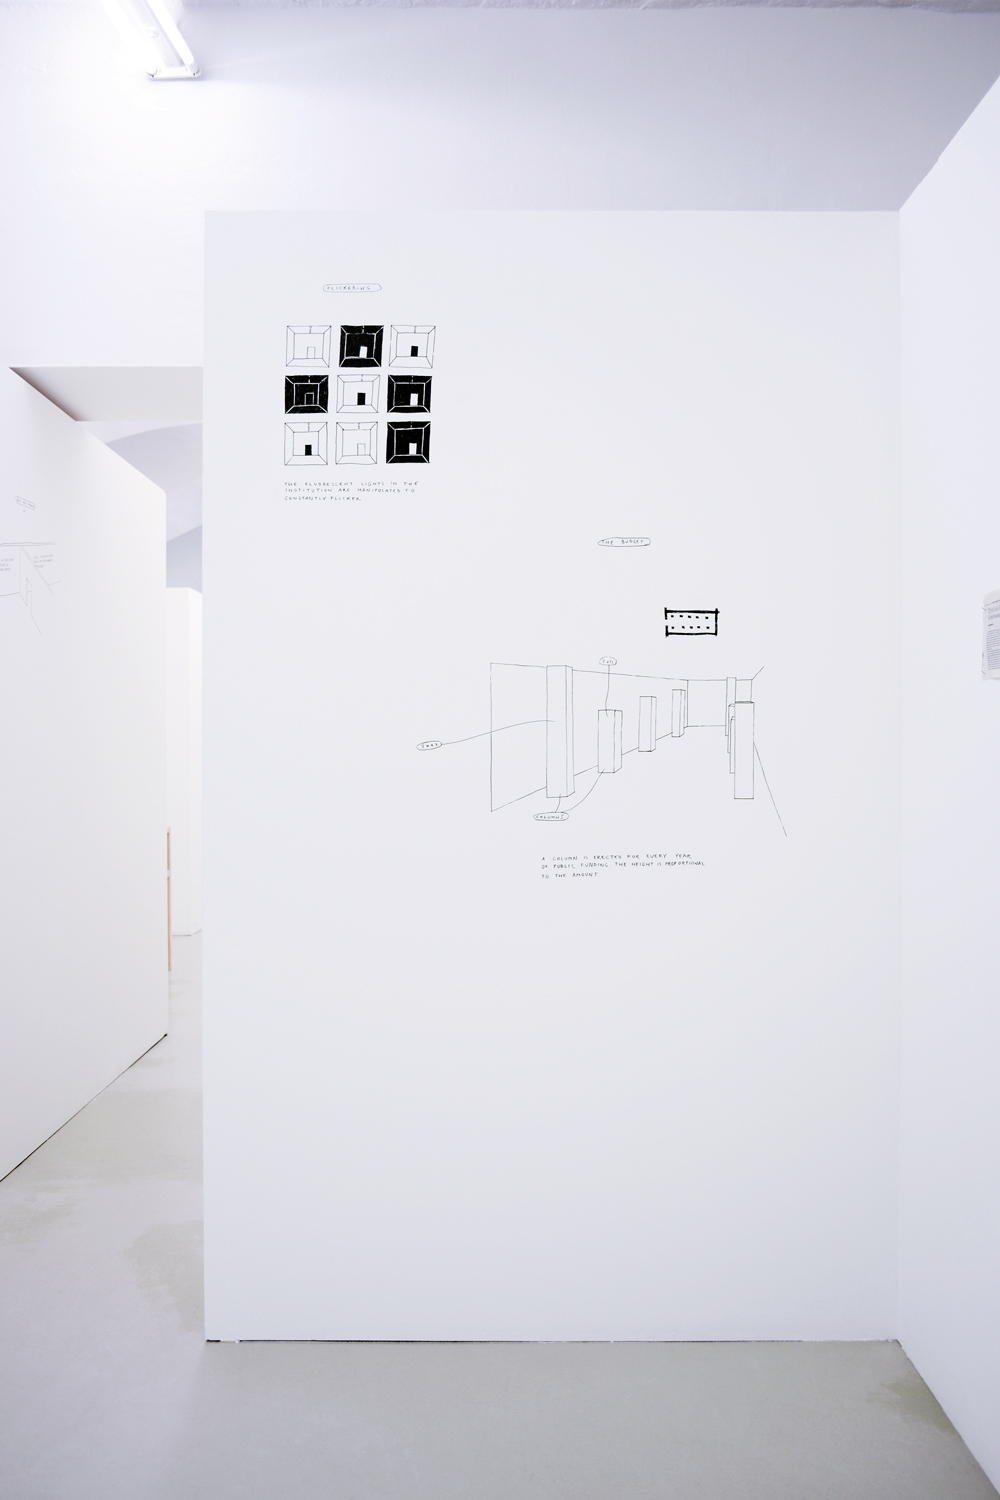 Spatial Dispositions, Installation View, Aldo Giannotti, ar/ge kunst, Bozen/Bolzano 2015 photo aneres